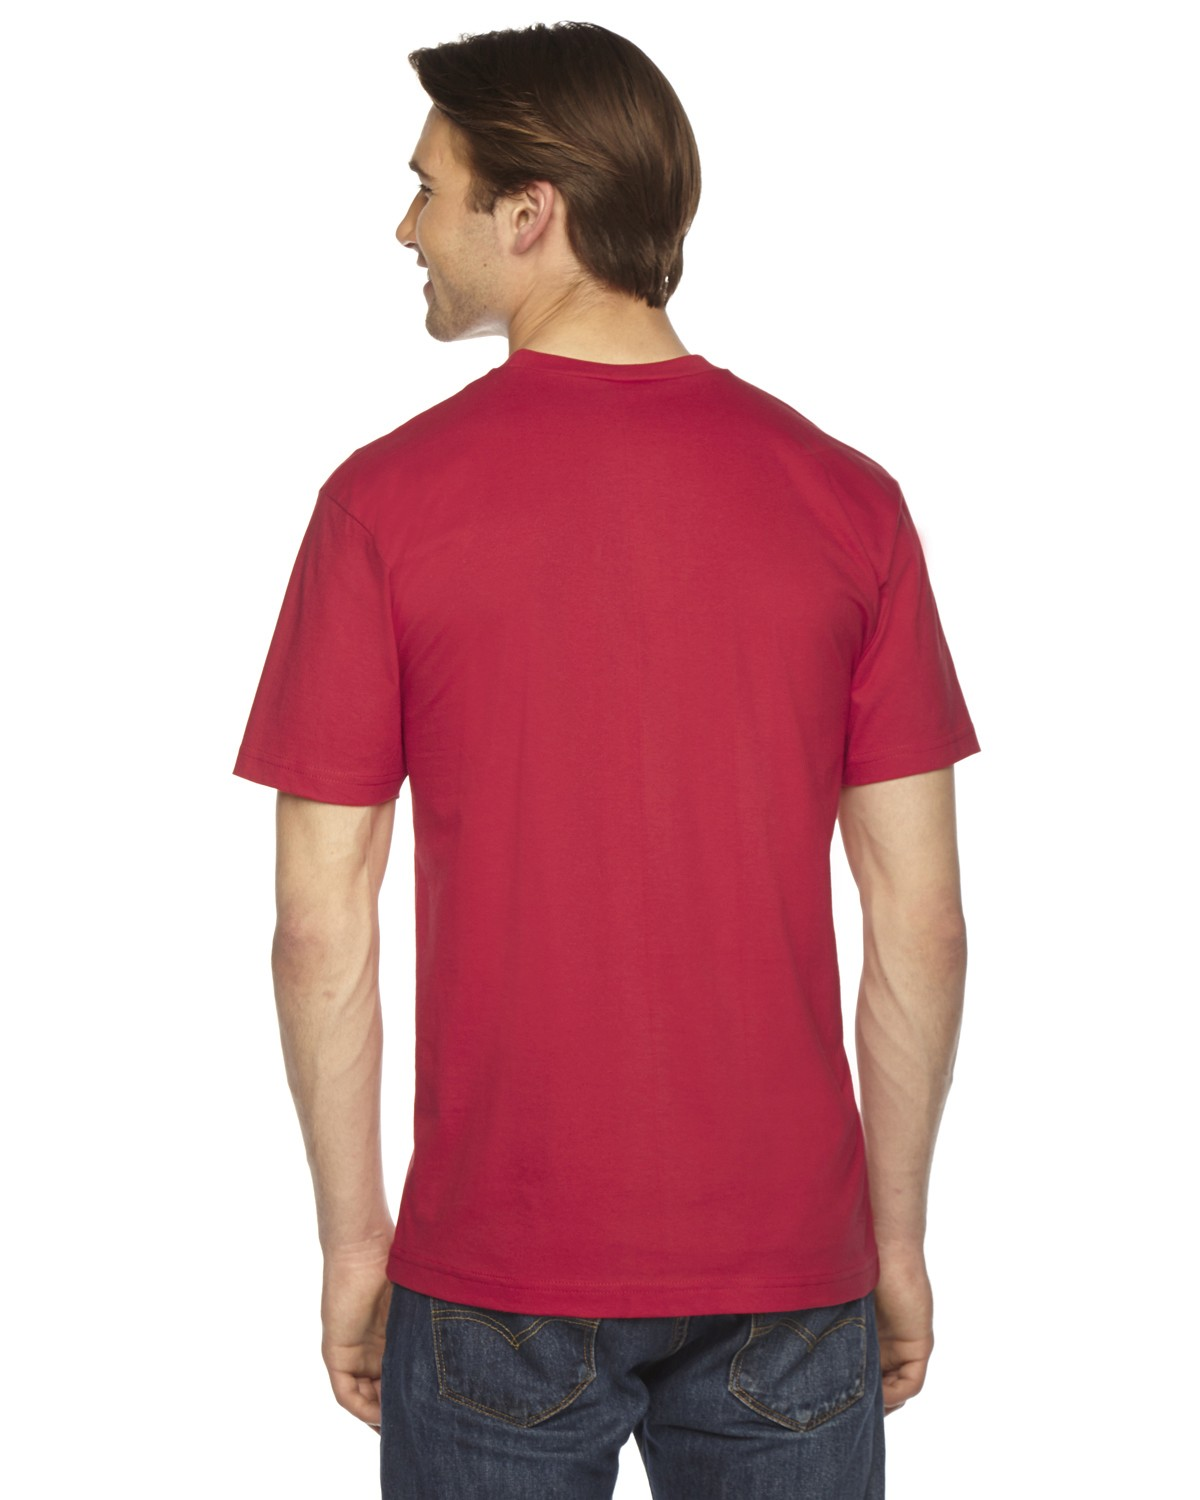 2456 American Apparel RED